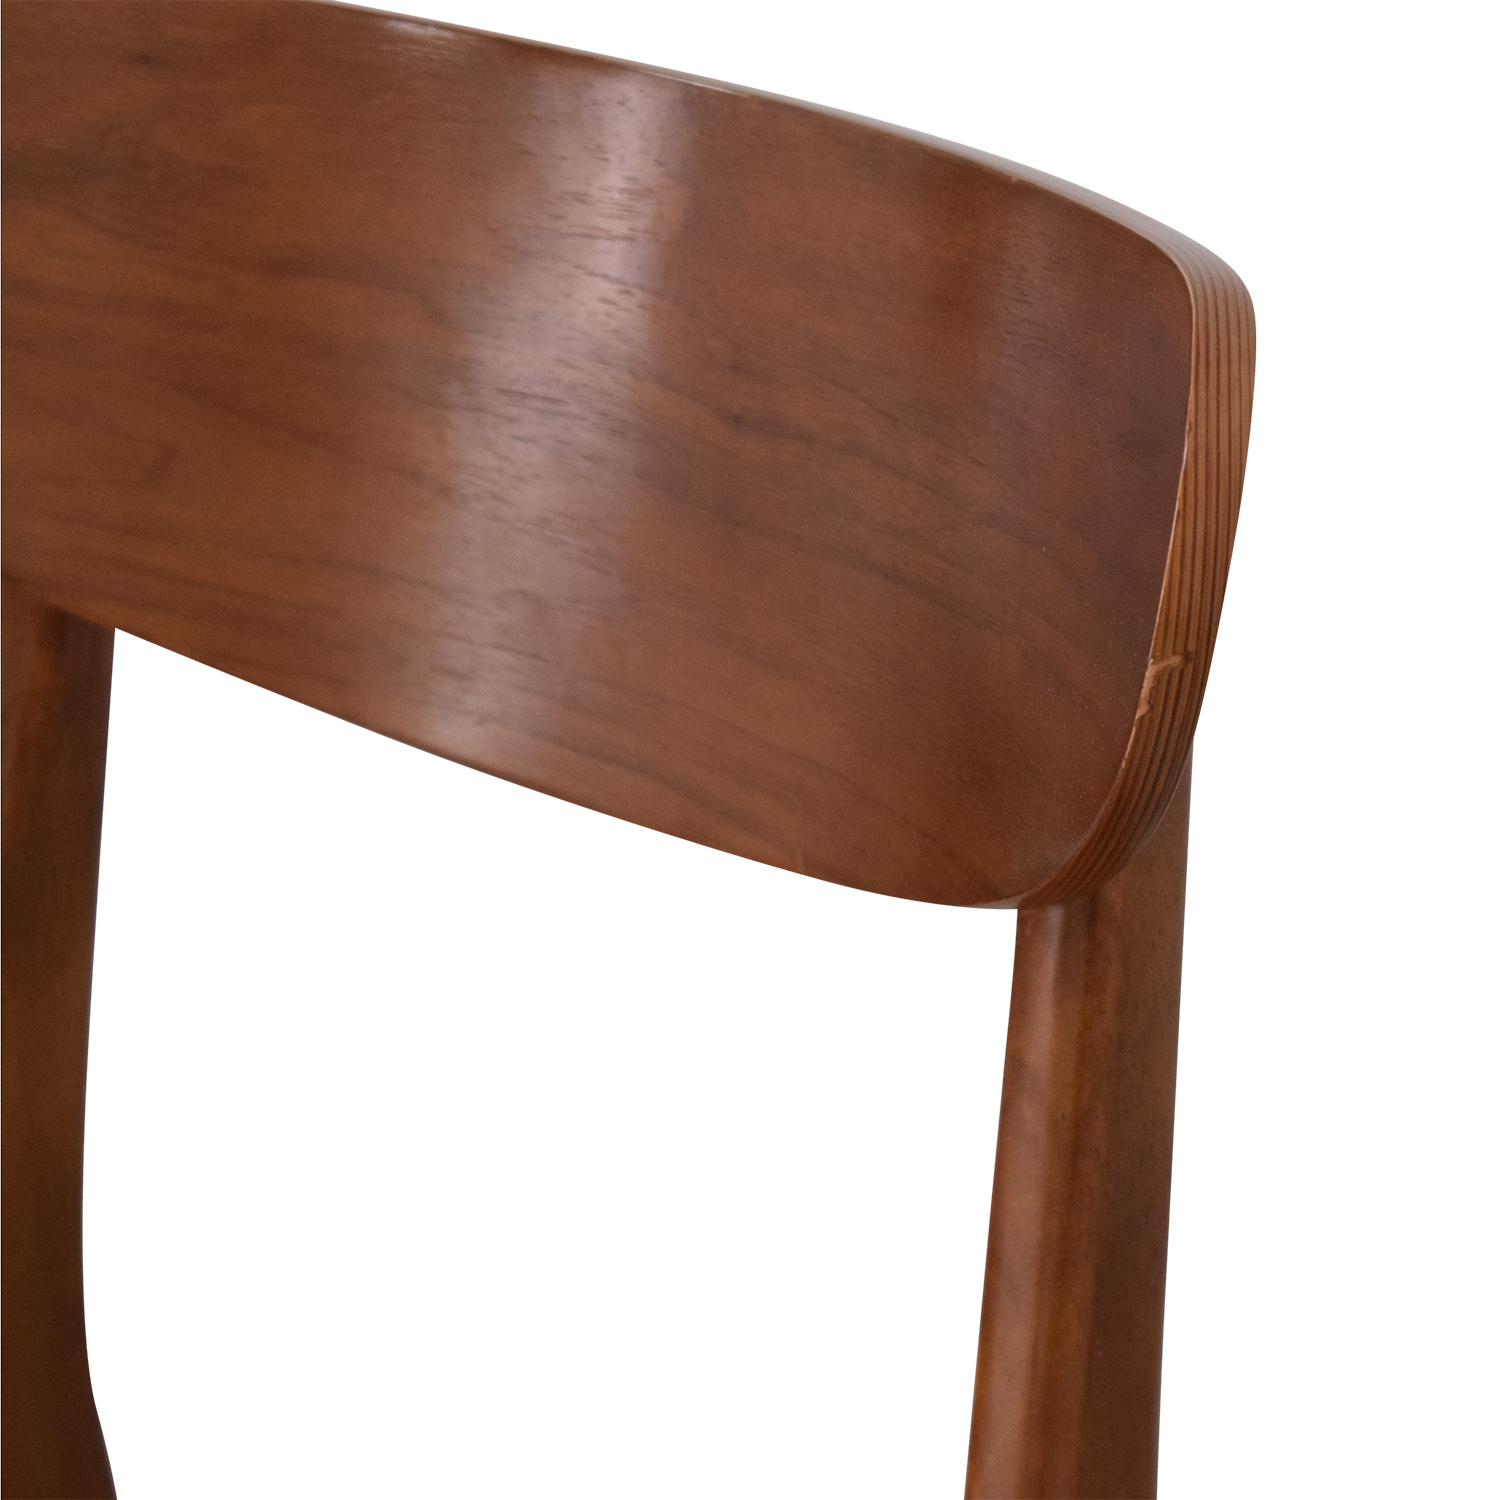 West Elm West Elm Classic Café Upholstered Dining Chairs Dining Chairs